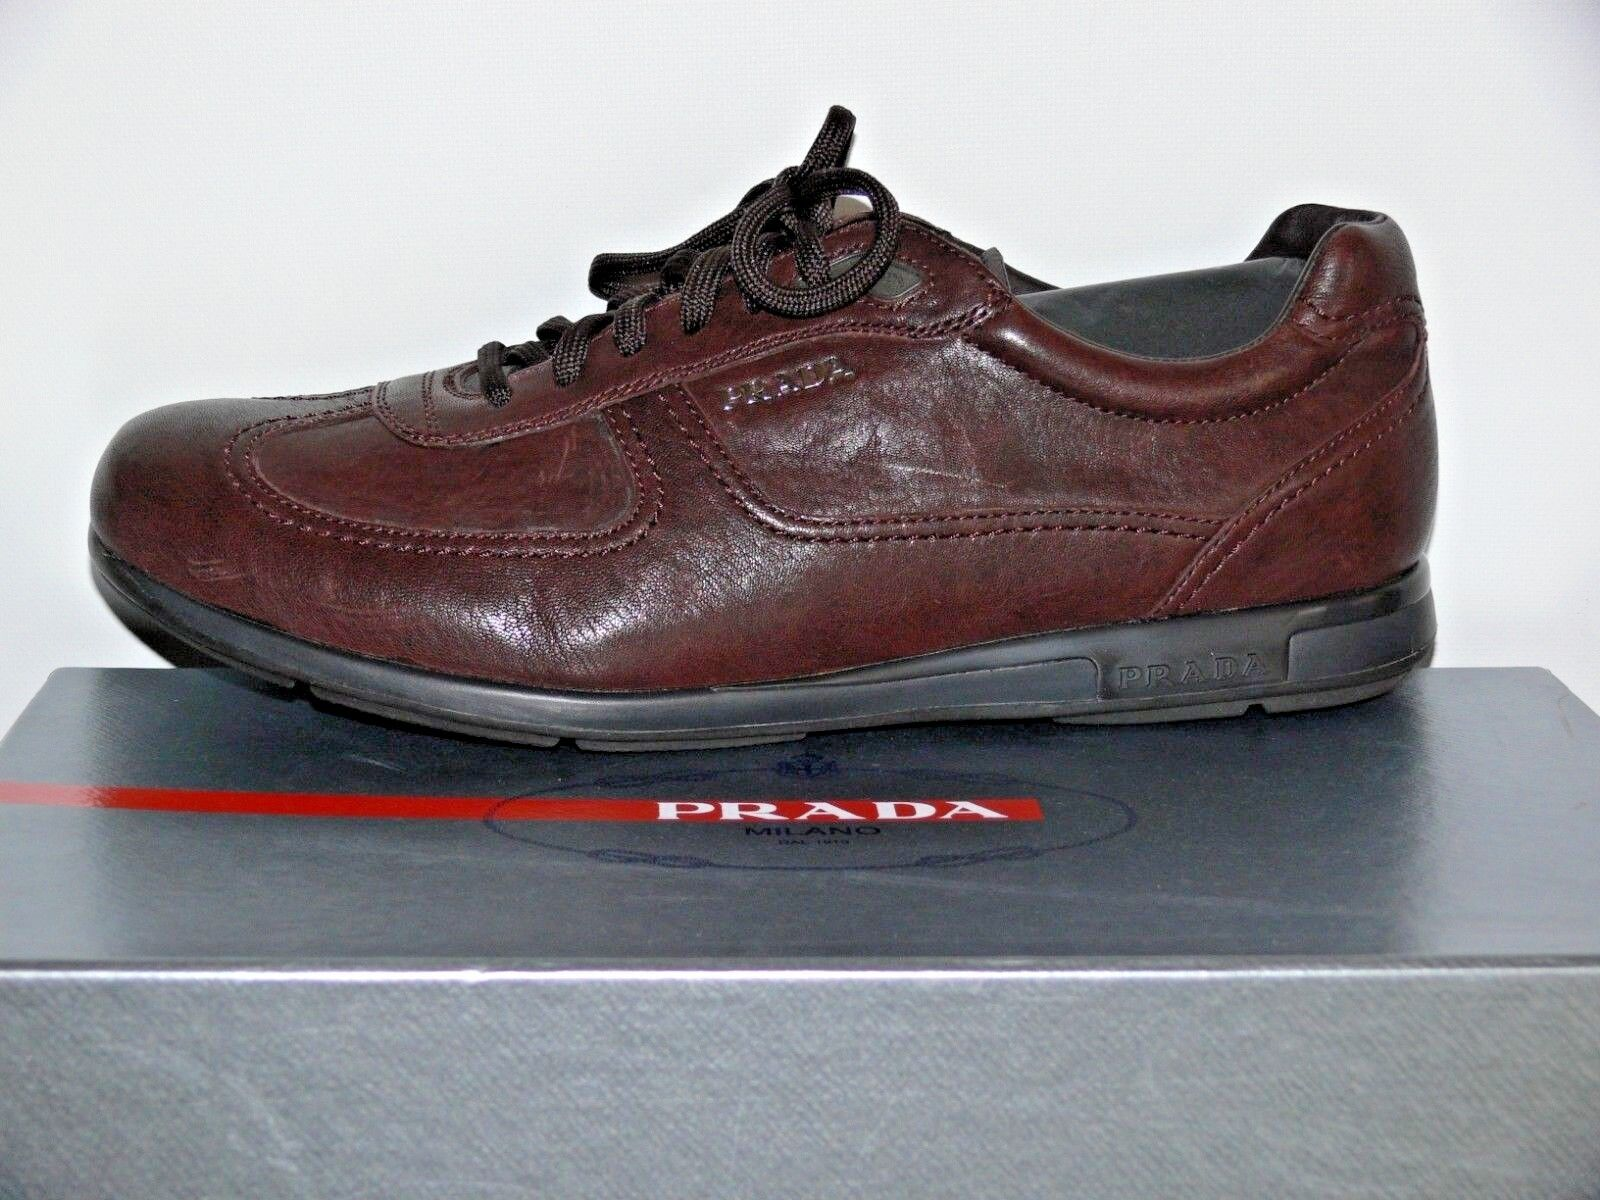 NEW  790.00 PRADA MADE IN ITALY NAPPA NAPPA NAPPA AVIATOR 6 GENUINE LEATHER US 10.5 45b840